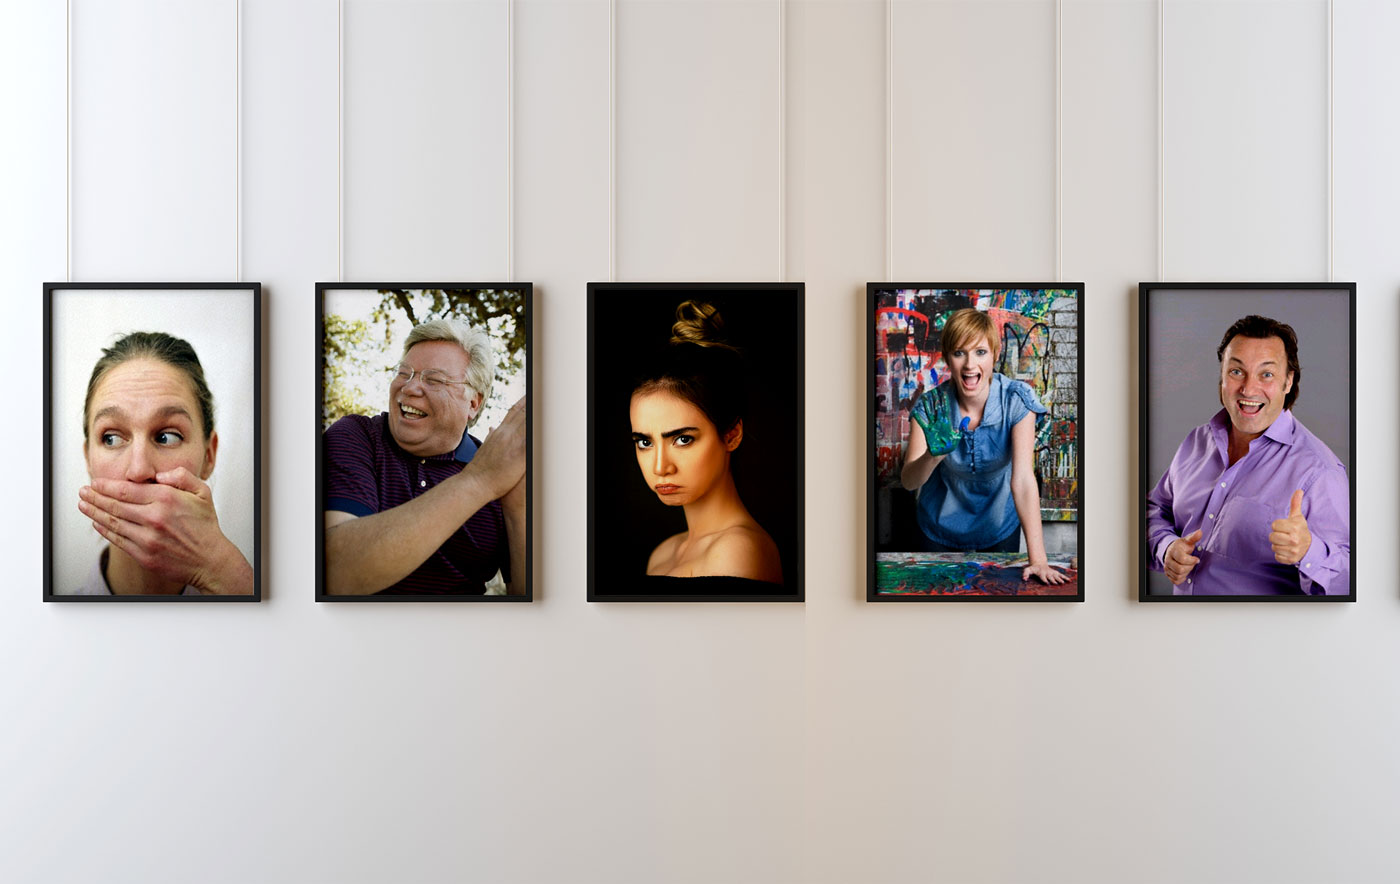 Portraits of the 5 personas